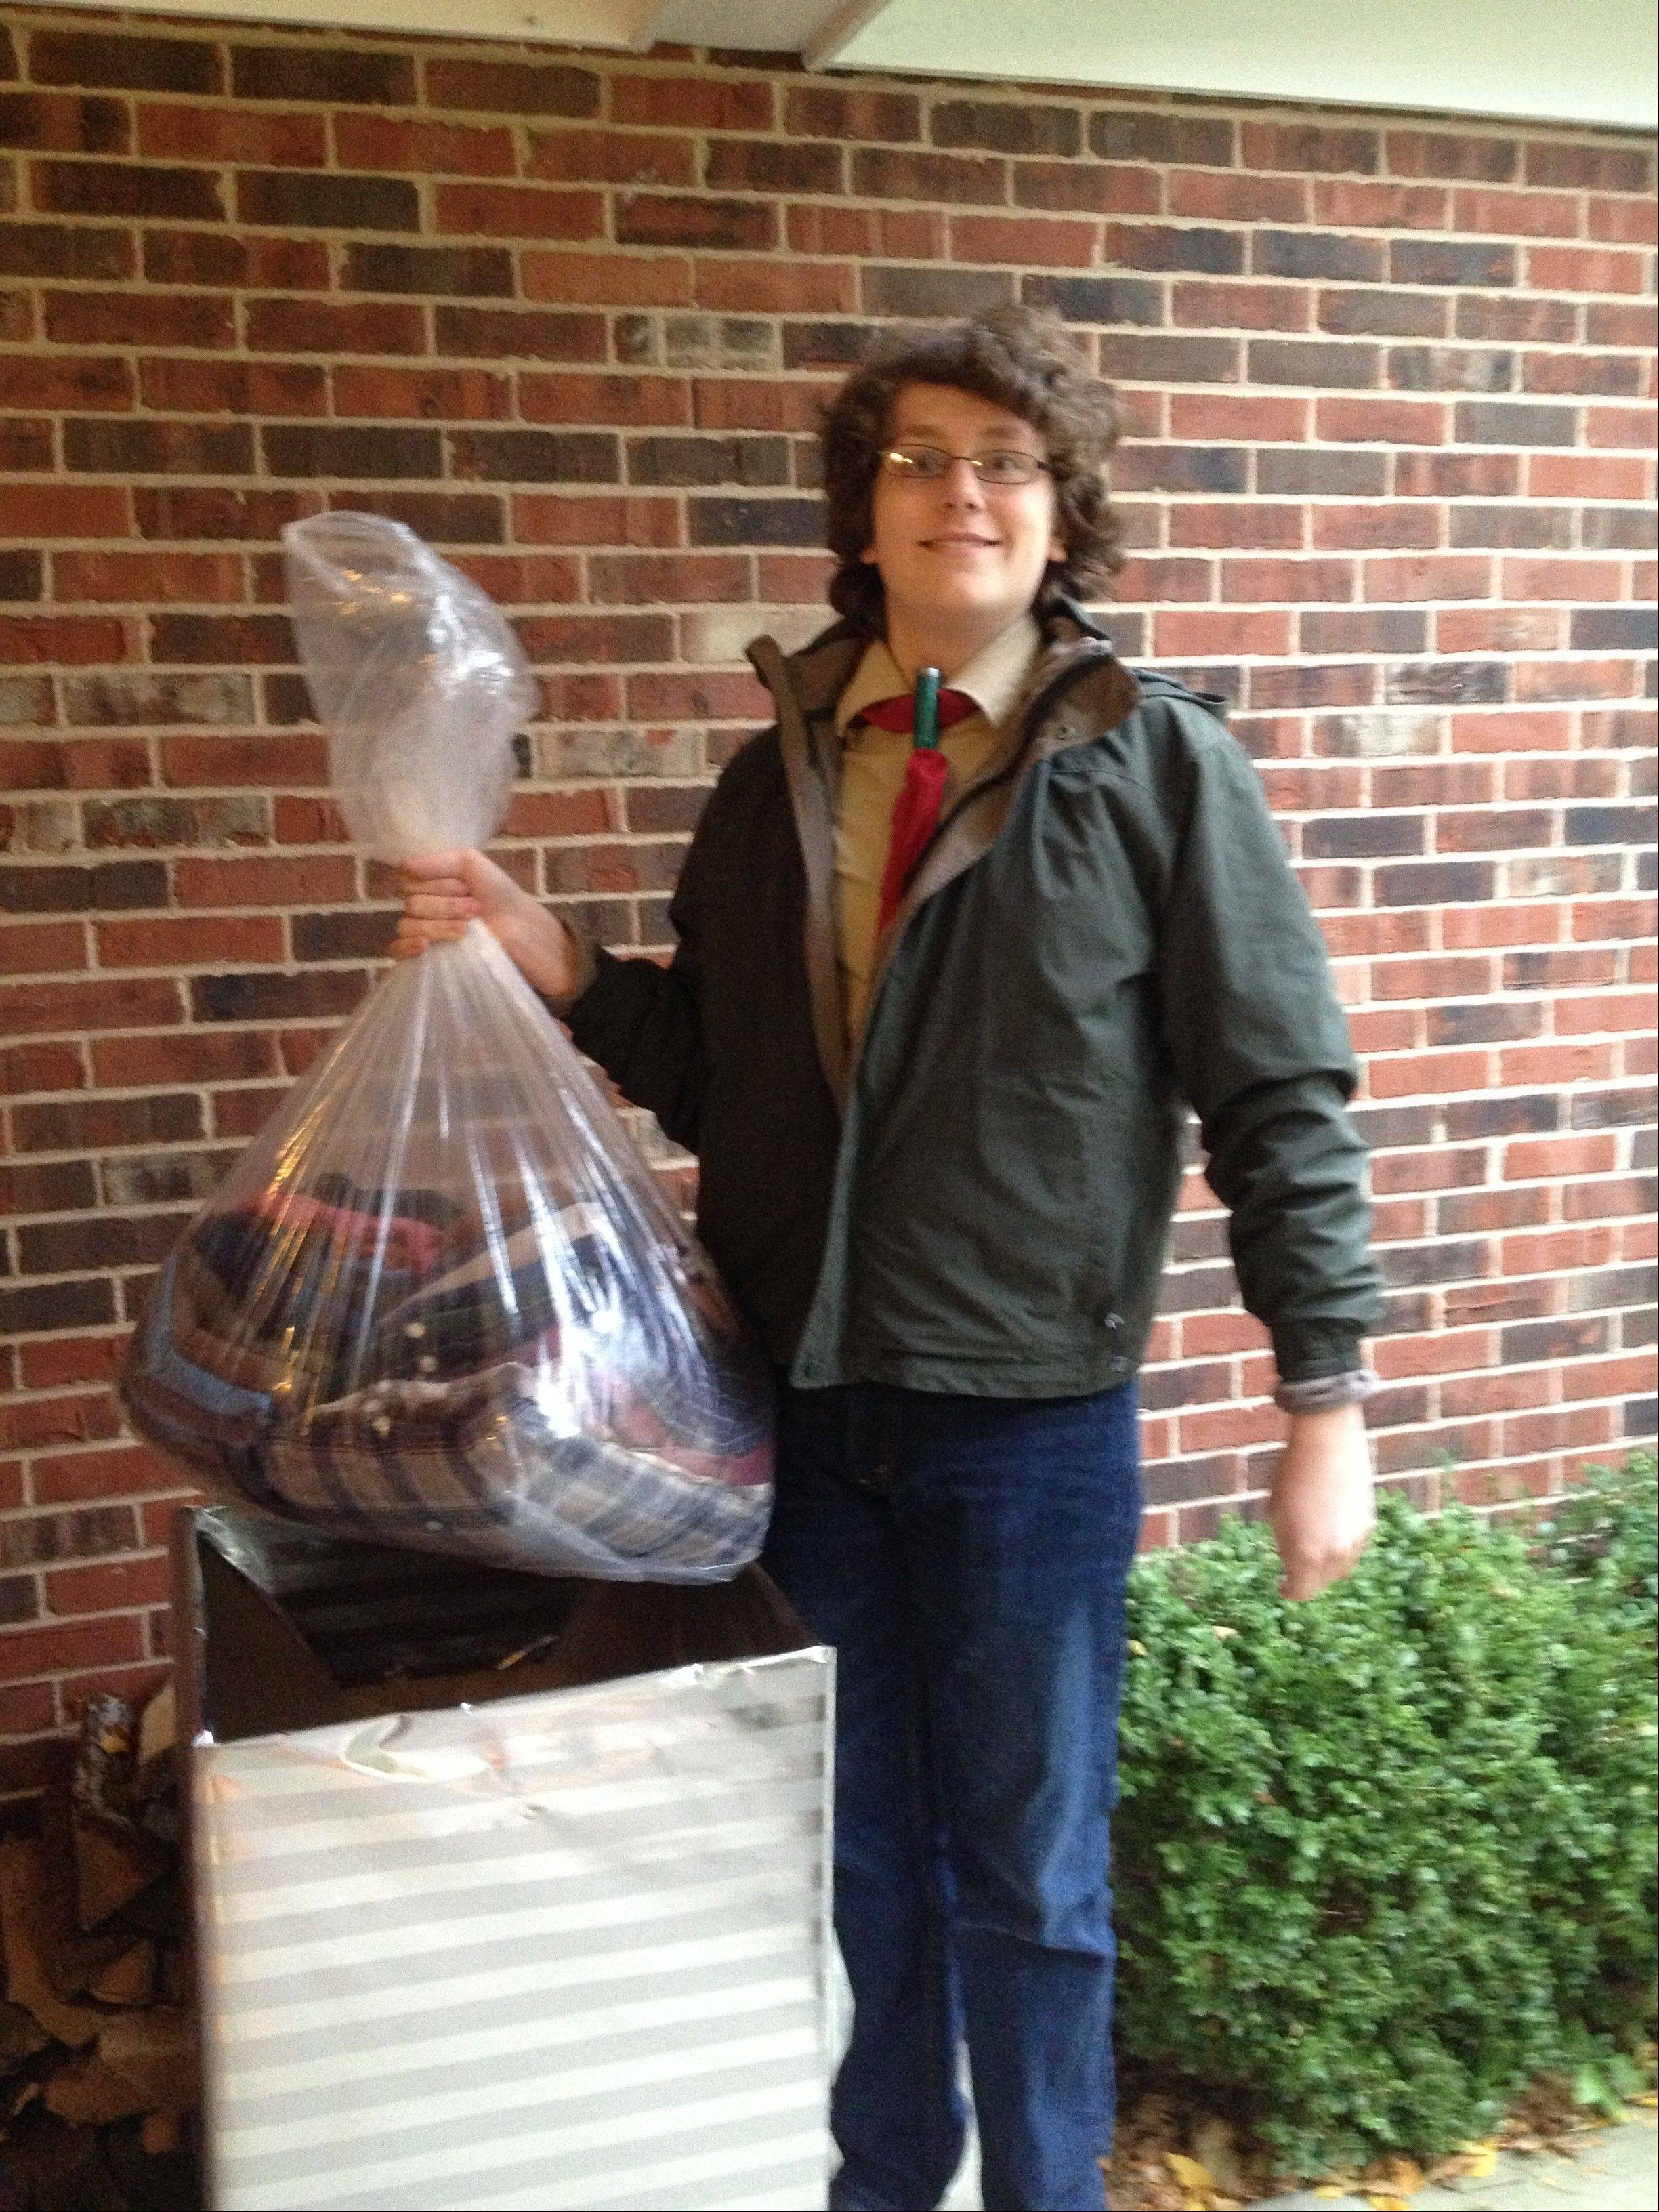 Life Scout Cole Johnston picks up donations from one of the boxes he set up to collect items for the Society of the Preservation of Human Dignity's resale shop. Johnston organized the donation drive for his Eagle Scout project.